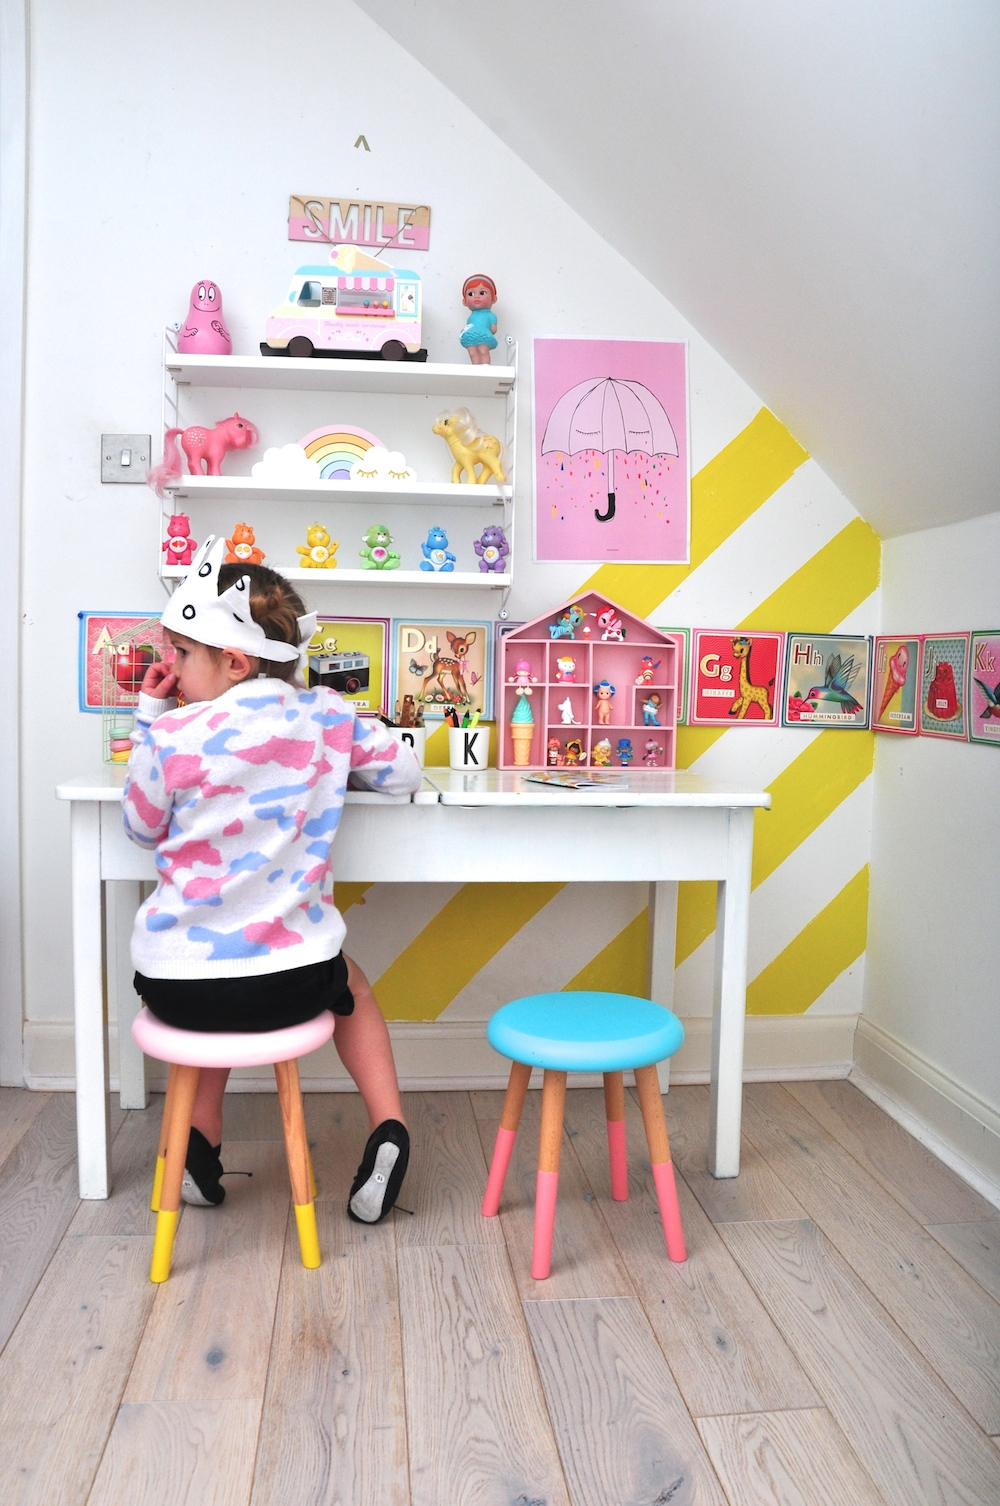 interior-wokspace_kids_girls_chloe_thurston